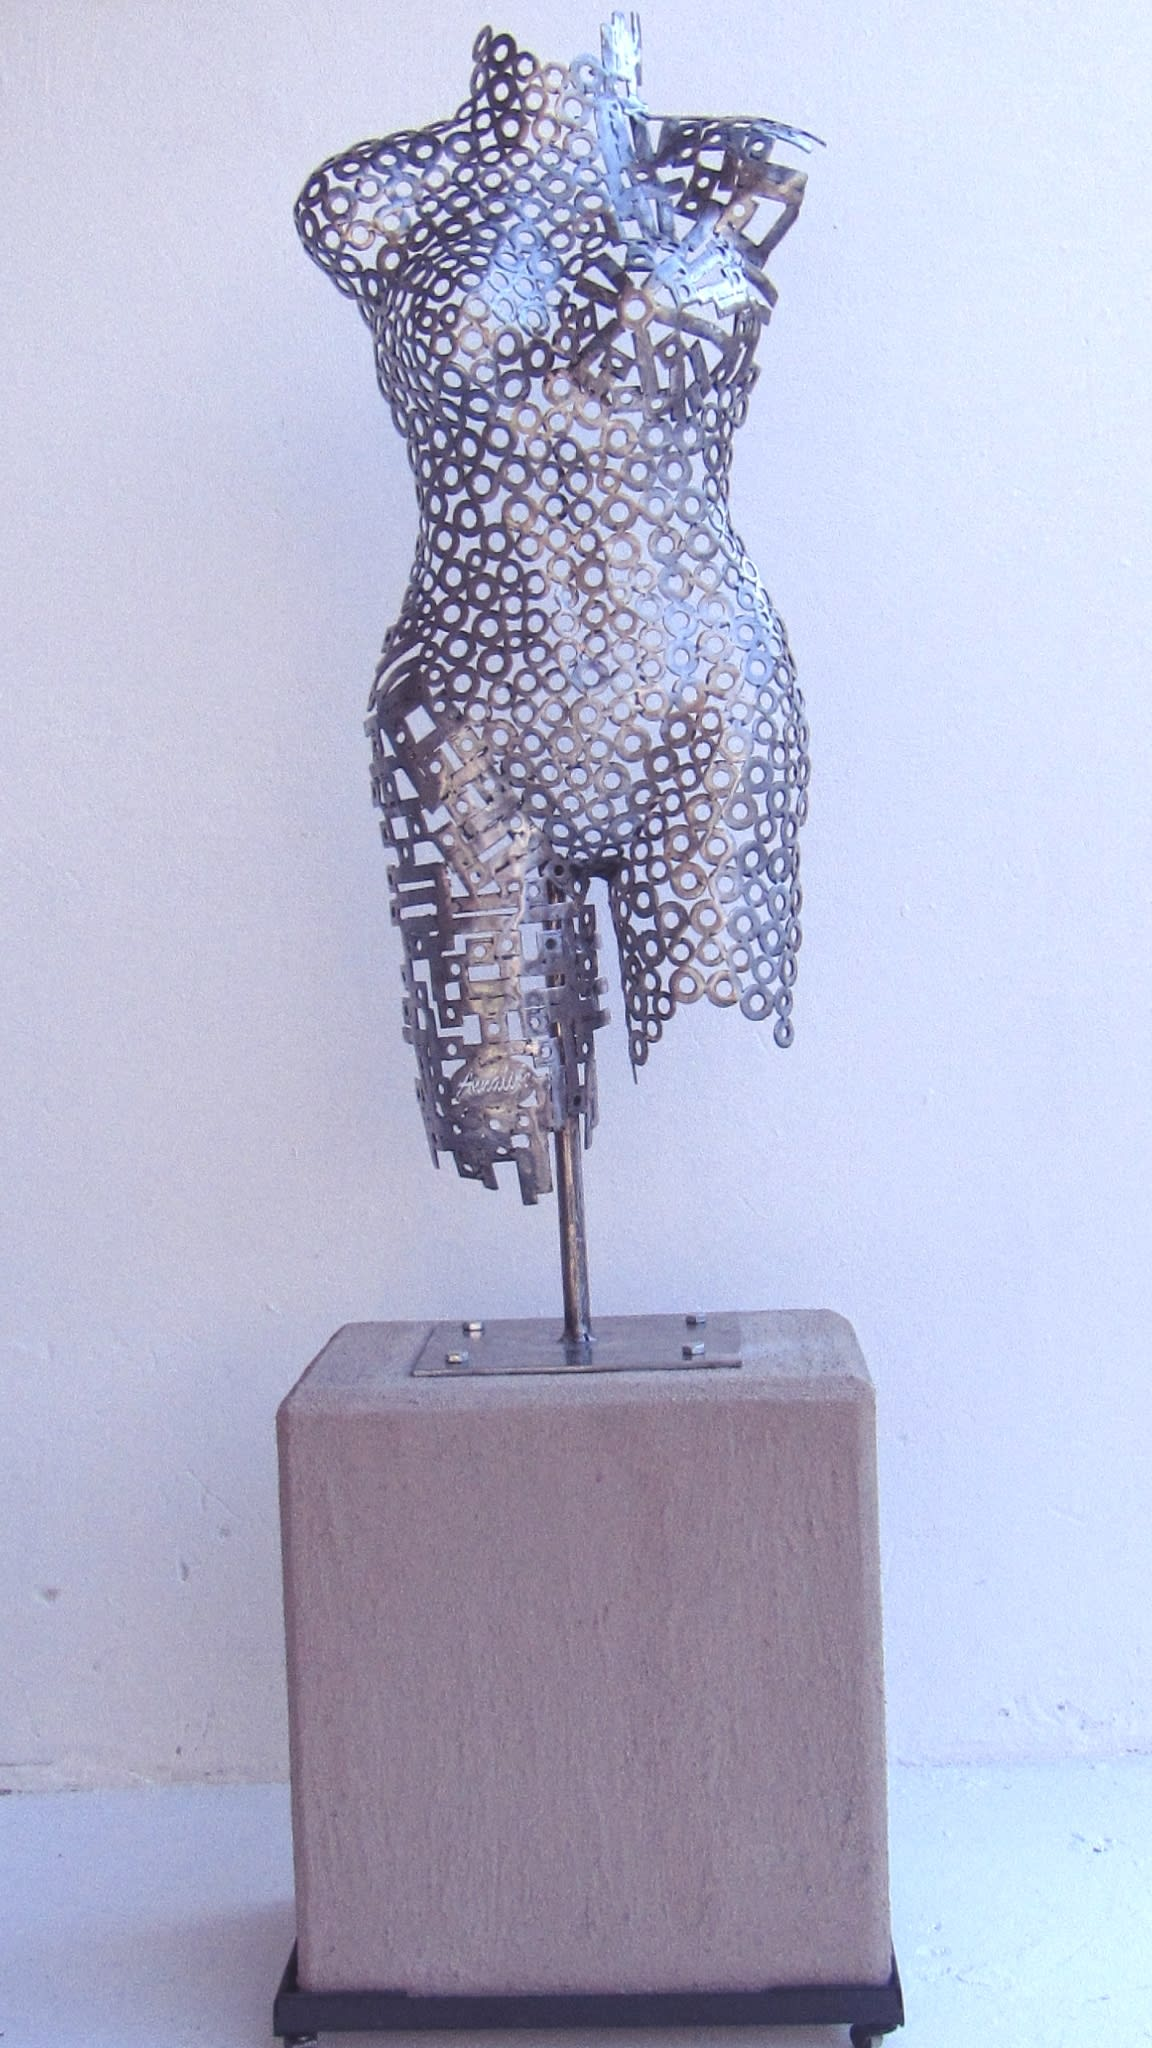 <span class=&#34;link fancybox-details-link&#34;><a href=&#34;/artworks/categories/68/2831-annalize-mynhardt-mixed-media-booby-silver-woman-2018/&#34;>View Detail Page</a></span><div class=&#34;artist&#34;><strong>Annalize Mynhardt</strong></div> <div class=&#34;title&#34;><em>Mixed Media Booby Silver Woman</em>, 2018</div> <div class=&#34;medium&#34;>Steel & Cement/Concrete</div> <div class=&#34;dimensions&#34;>160cm x 45cm x 30cm</div><div class=&#34;price&#34;>R20,000.00</div>